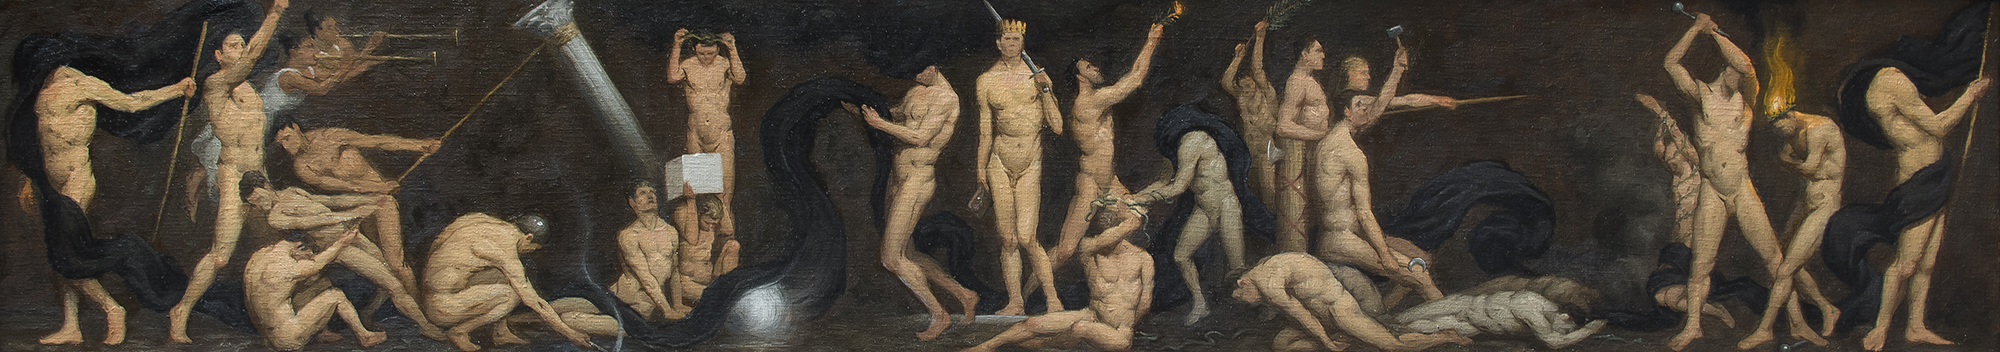 Study for Allegory of Ideology  2019, oil on canvas 9 x 48 in Not for sale